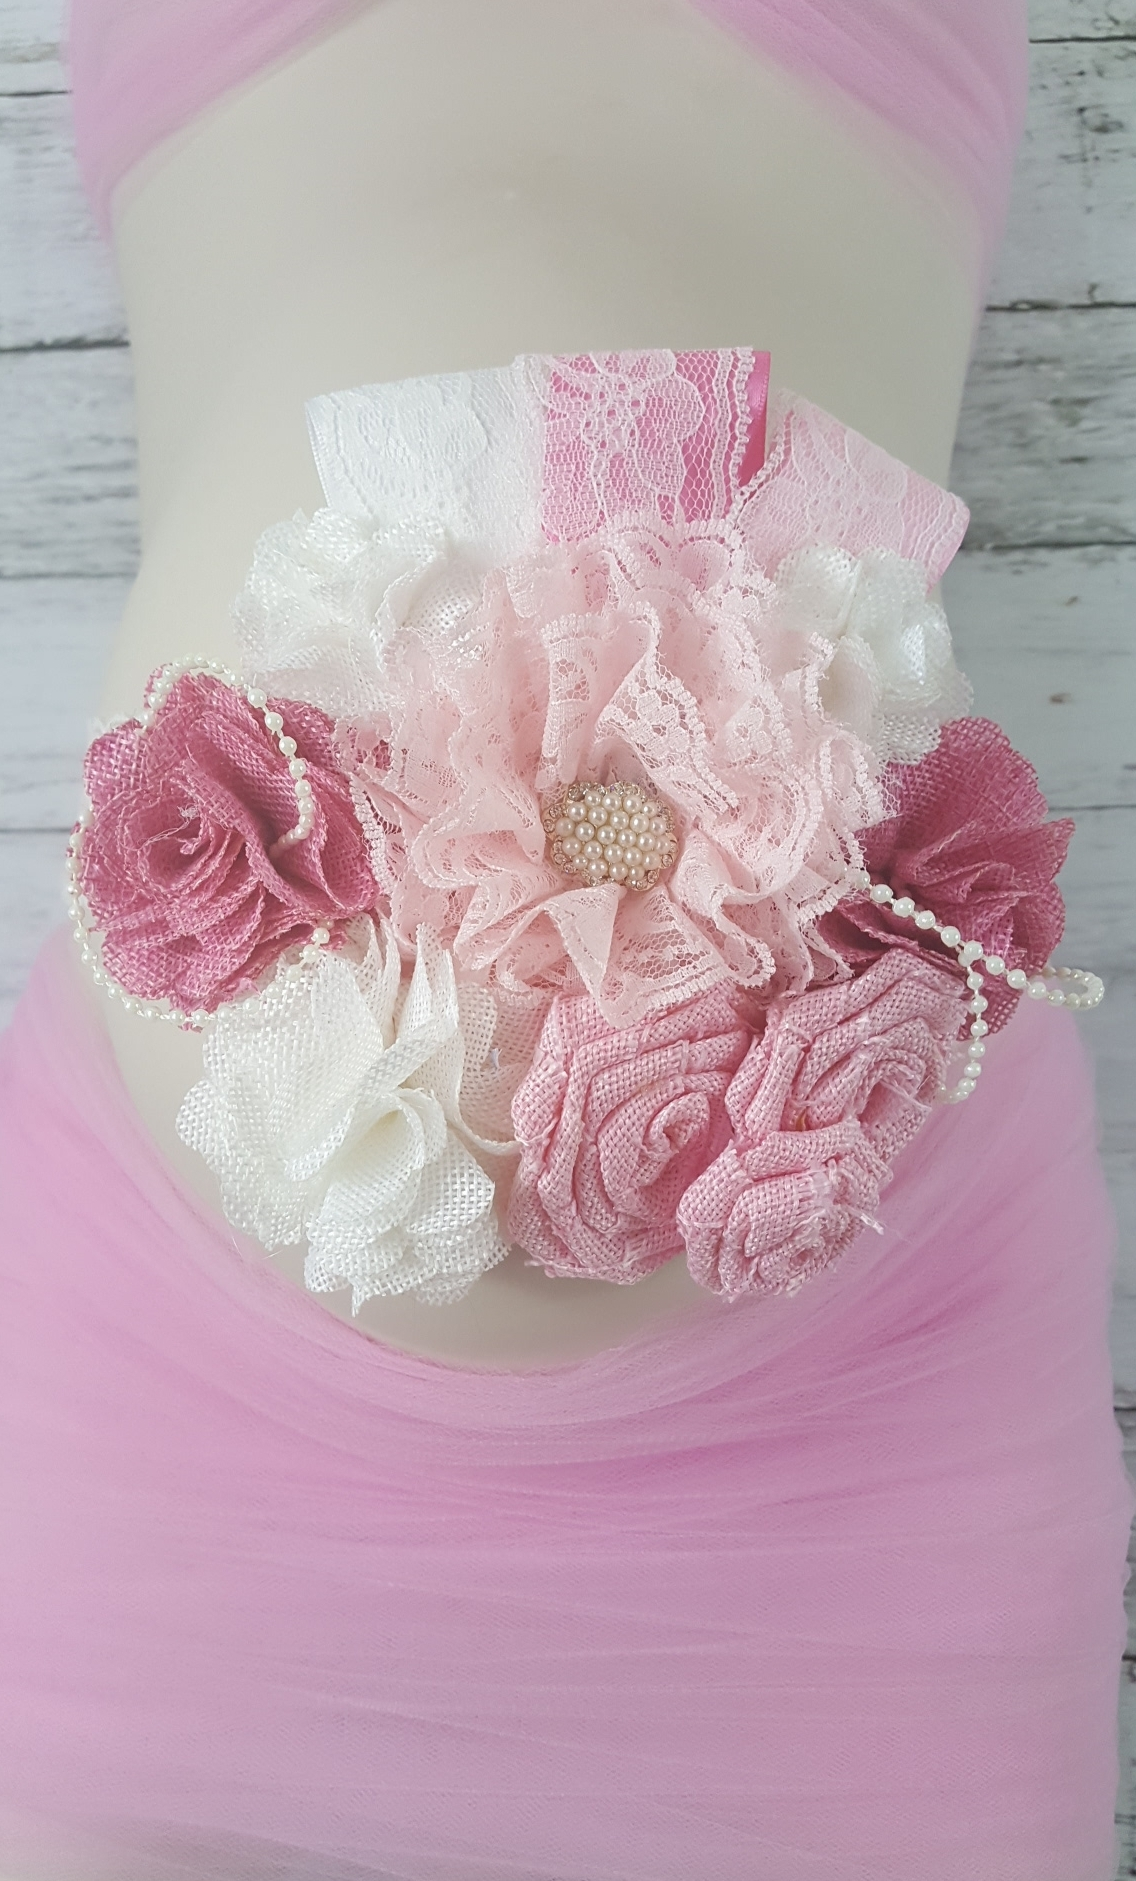 Rustic Pink Burlap Flowers Lace Pearls Maternity Belly Sash Photo